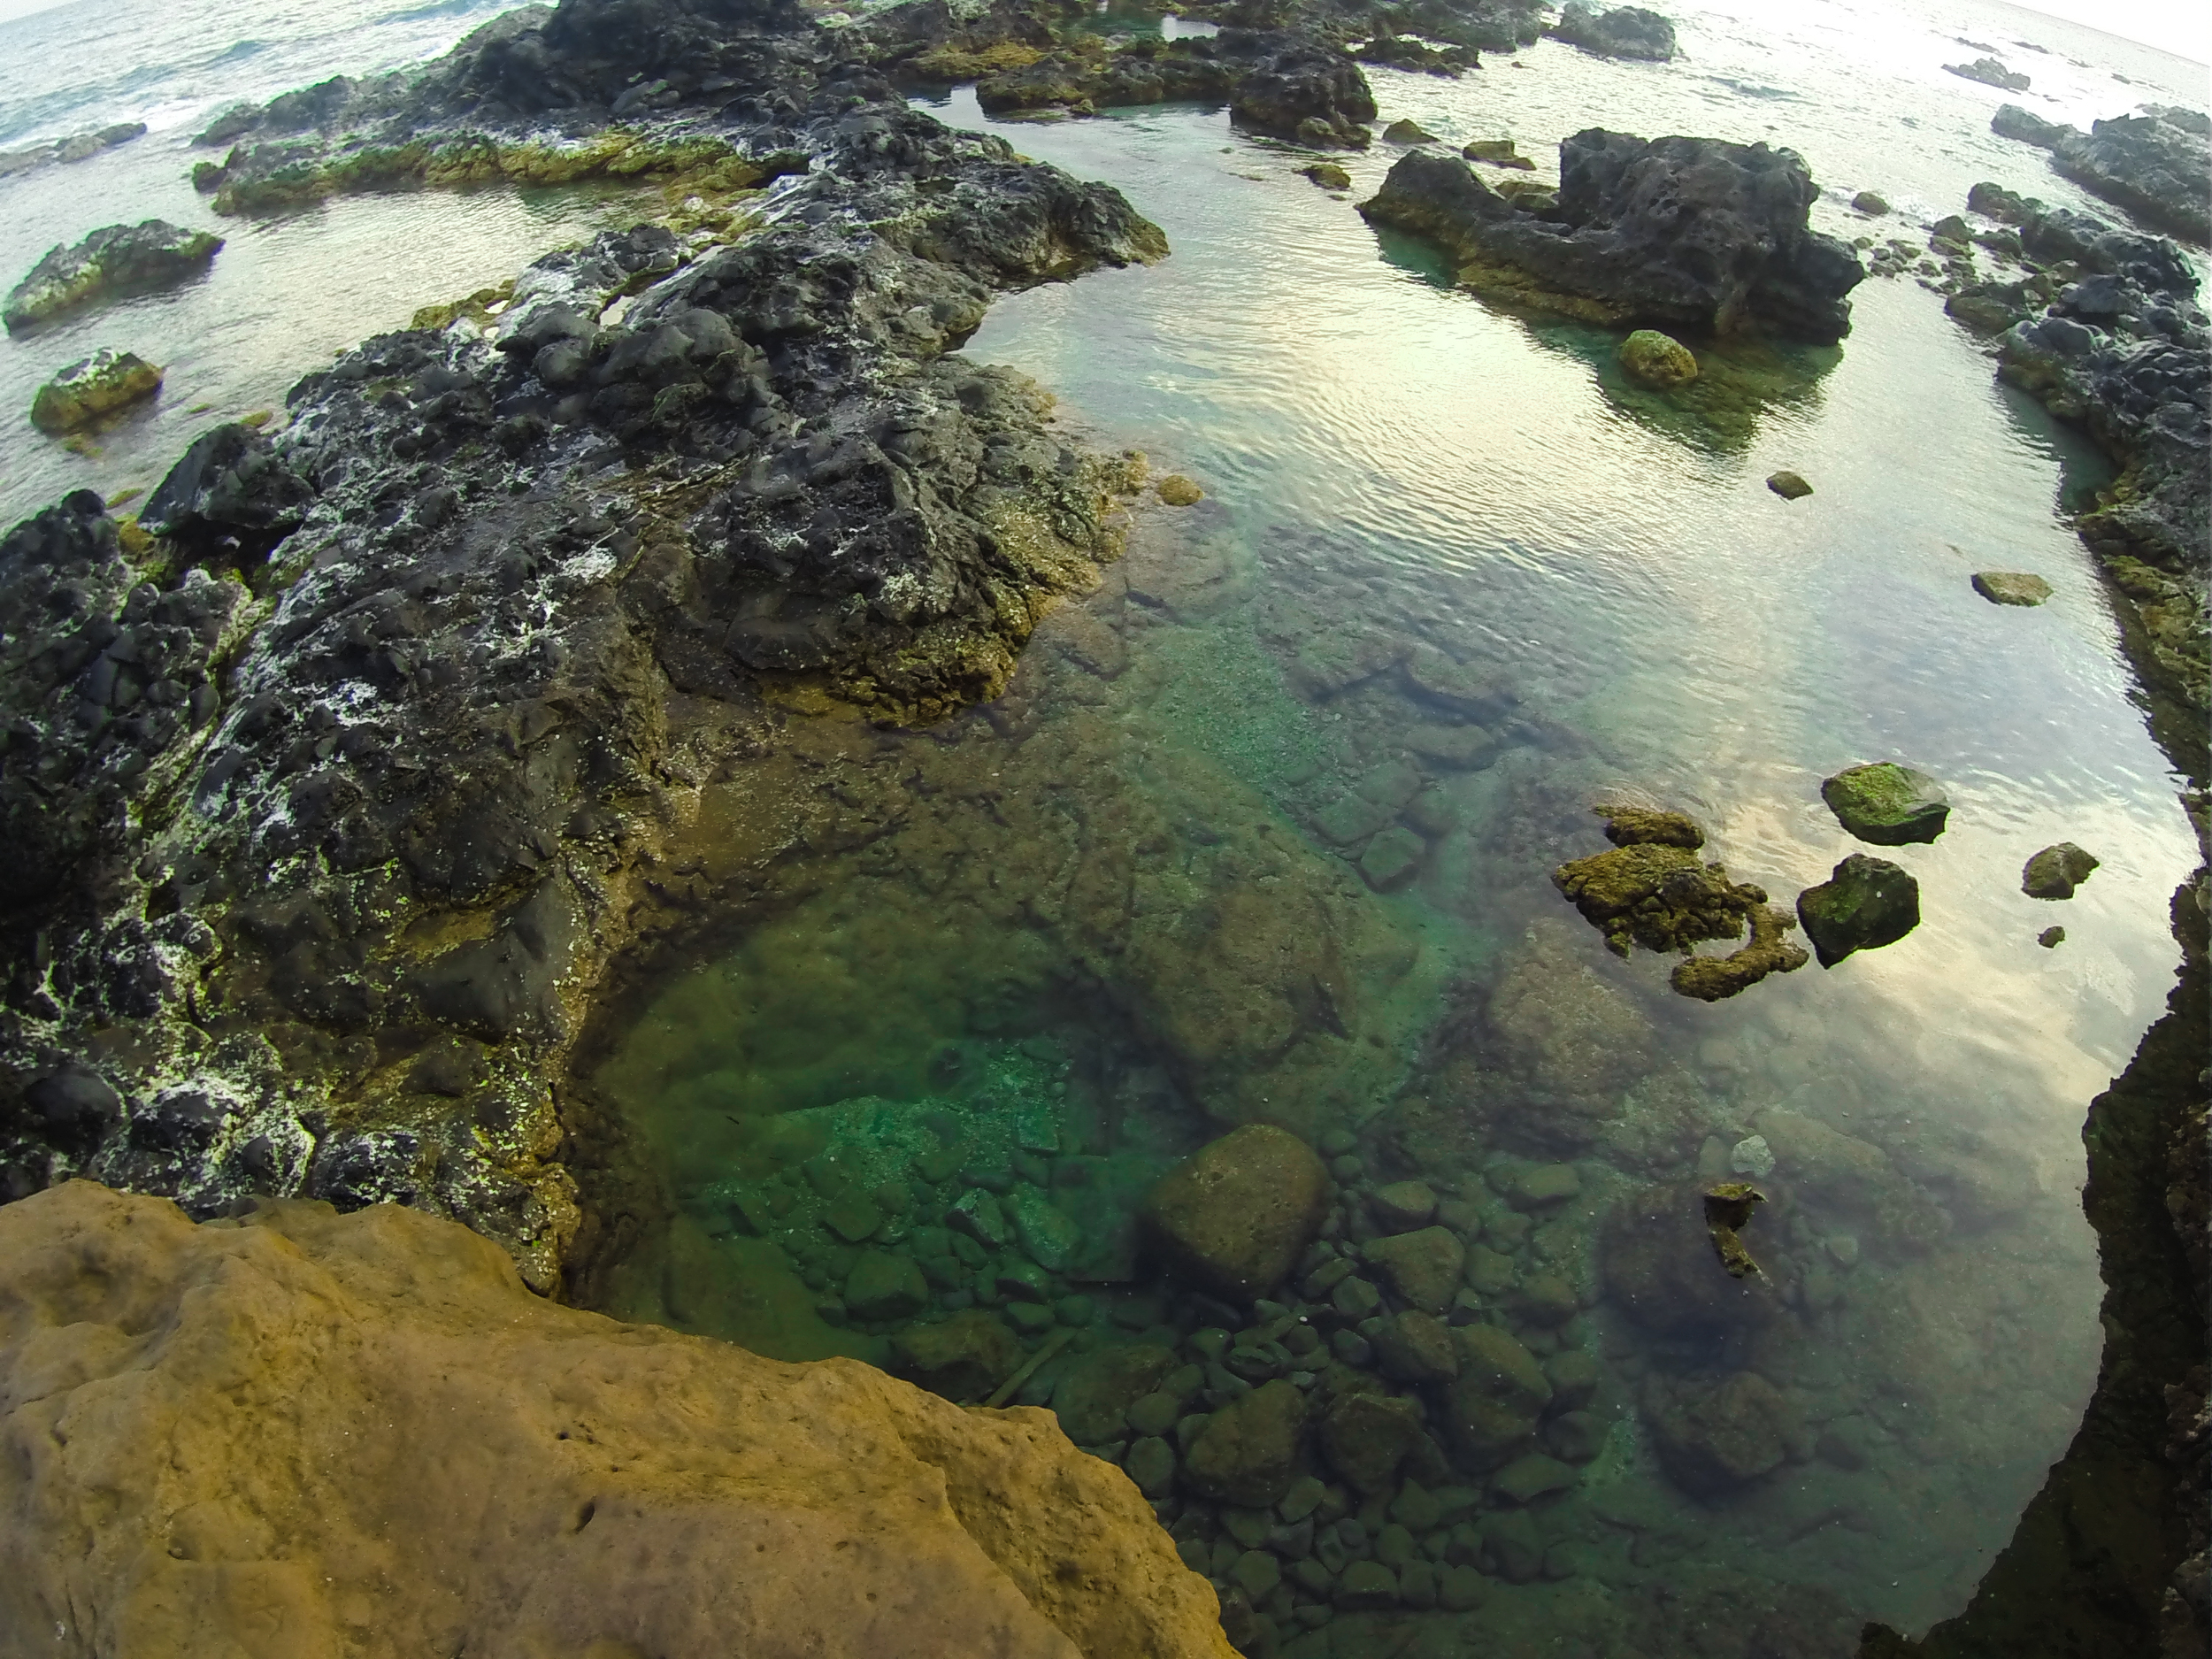 As tempting as it was to swim here, we had plenty of swim opportunities coming our way.